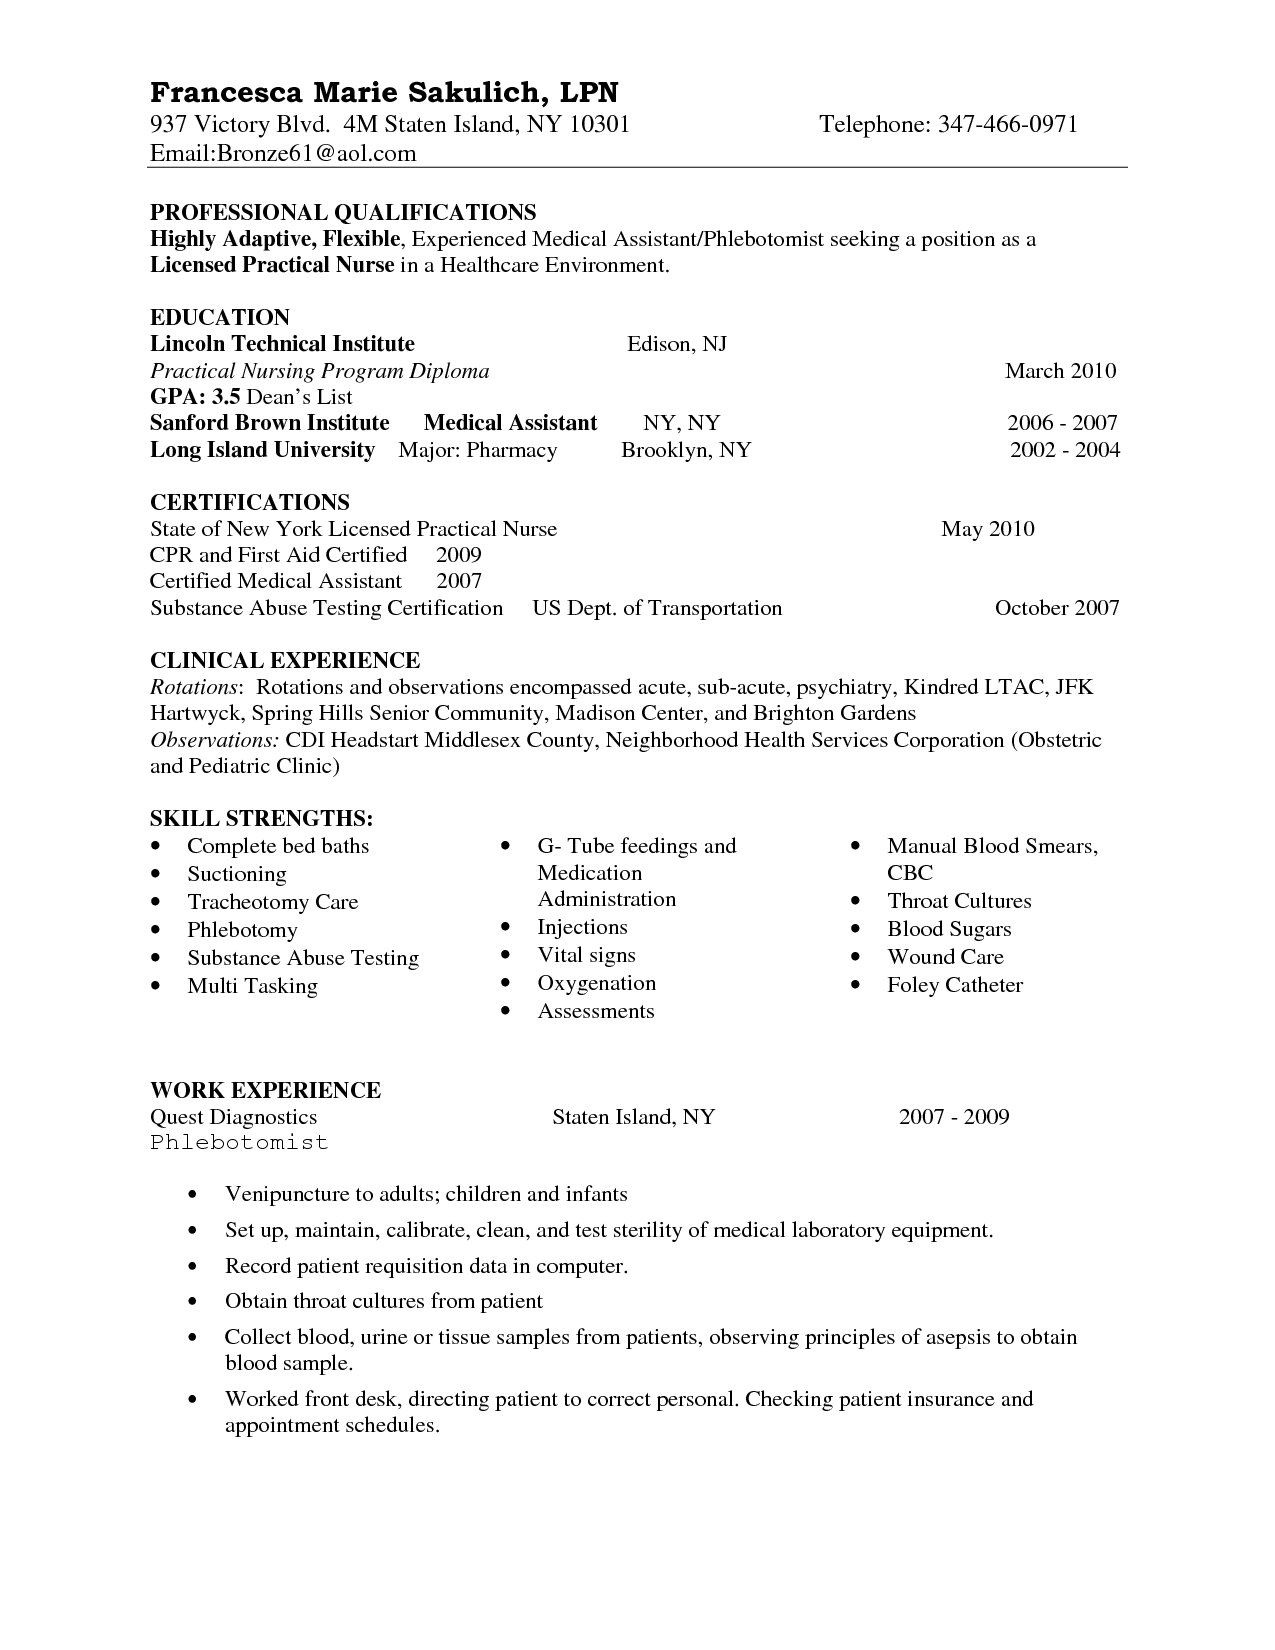 Resume Objective Examples For Healthcare Entry Level Lpn Resume Sample  Nursing  Pinterest  Nursing